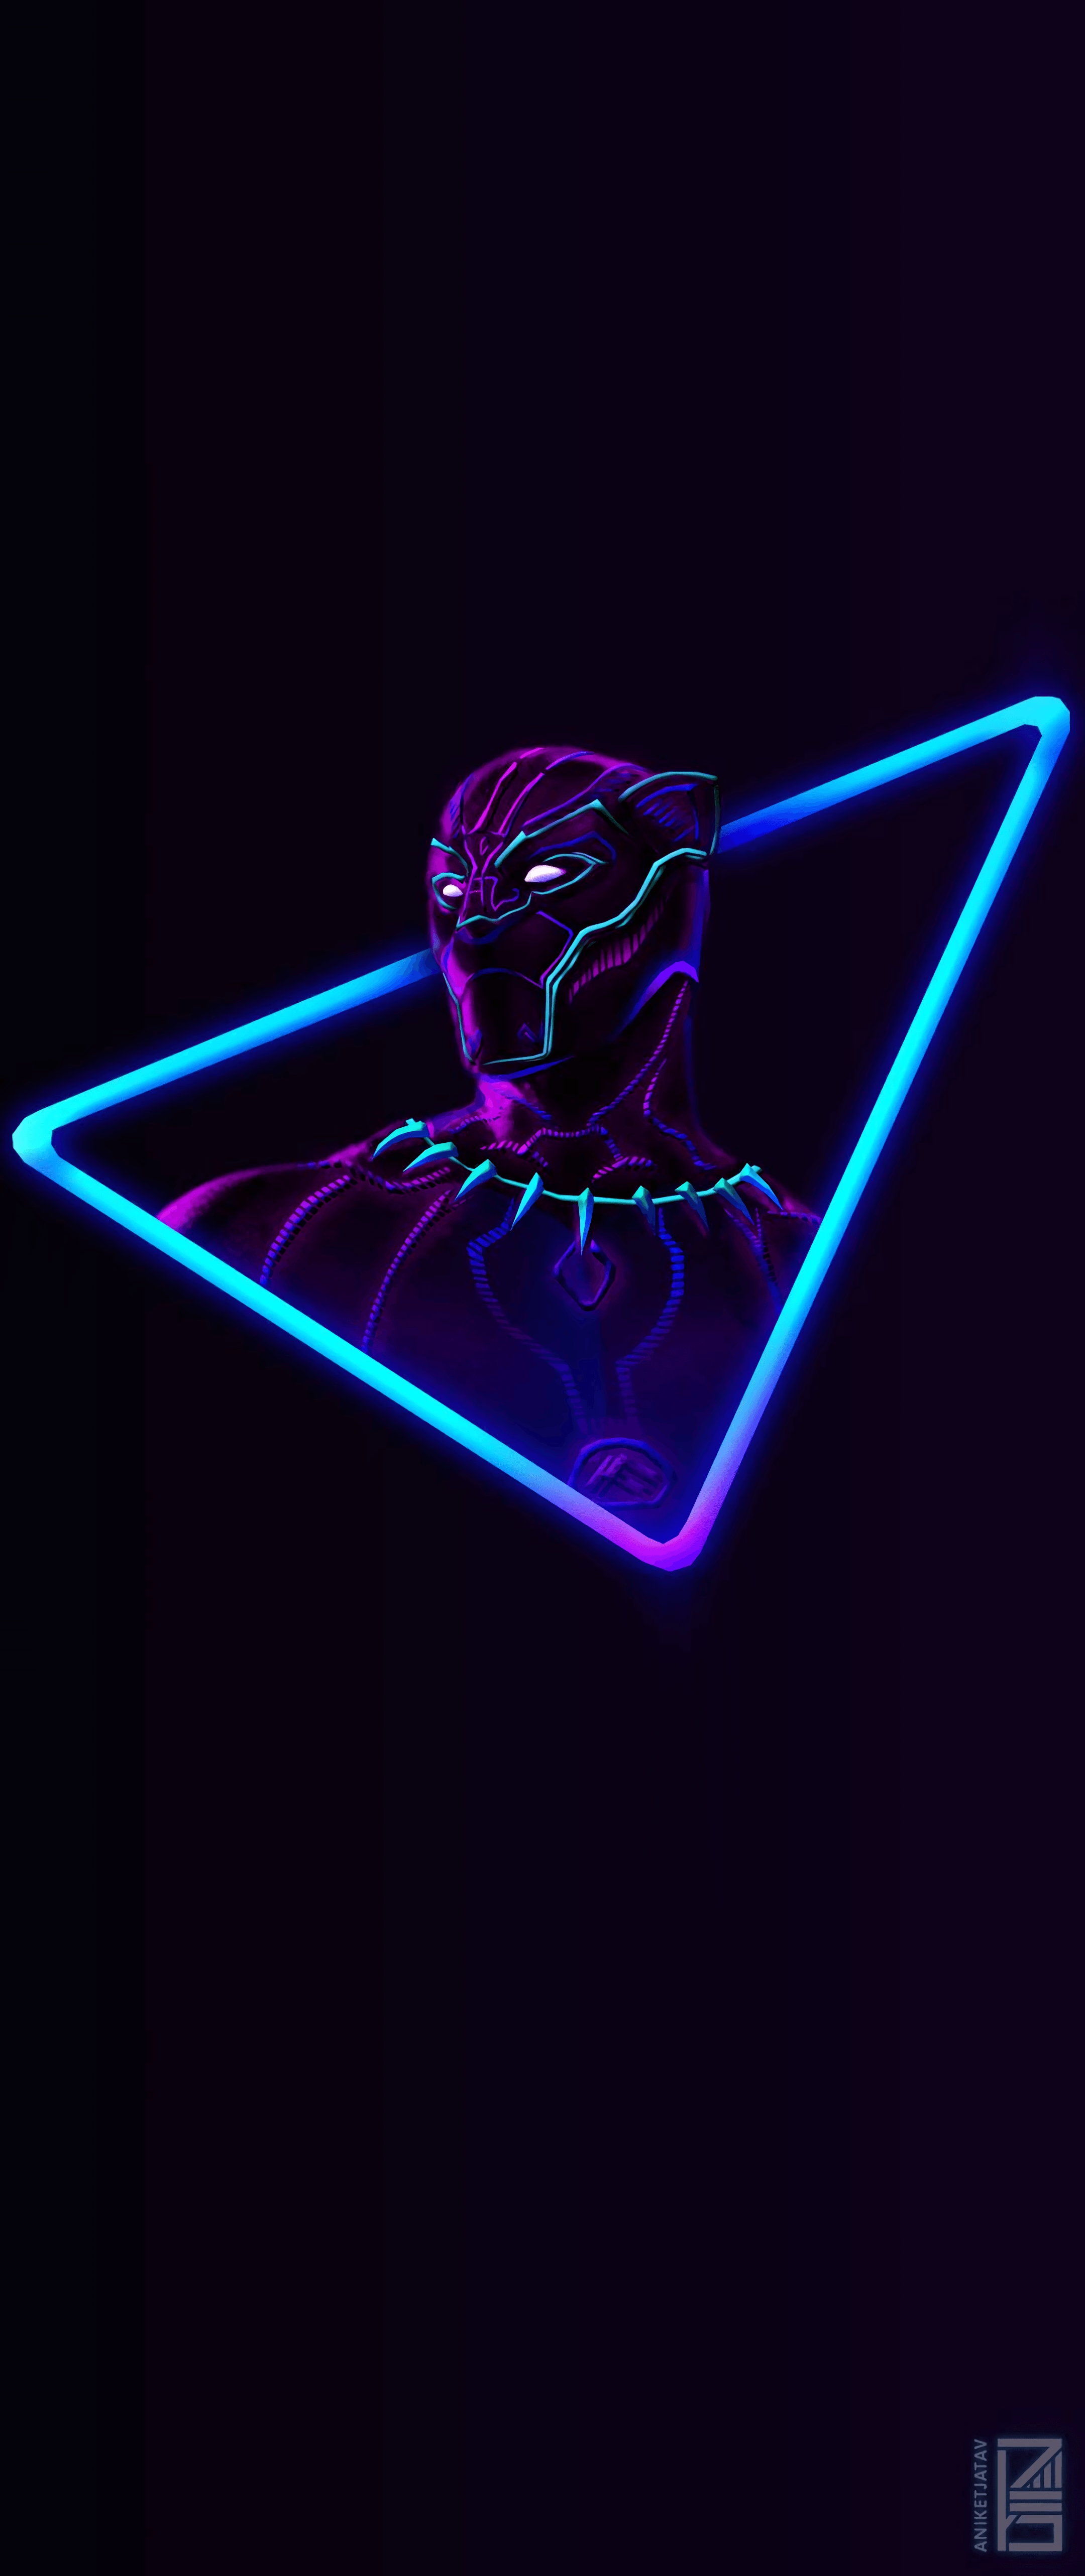 2160x5130 I Upscaled the Neon Black Panther artwork for phone ...